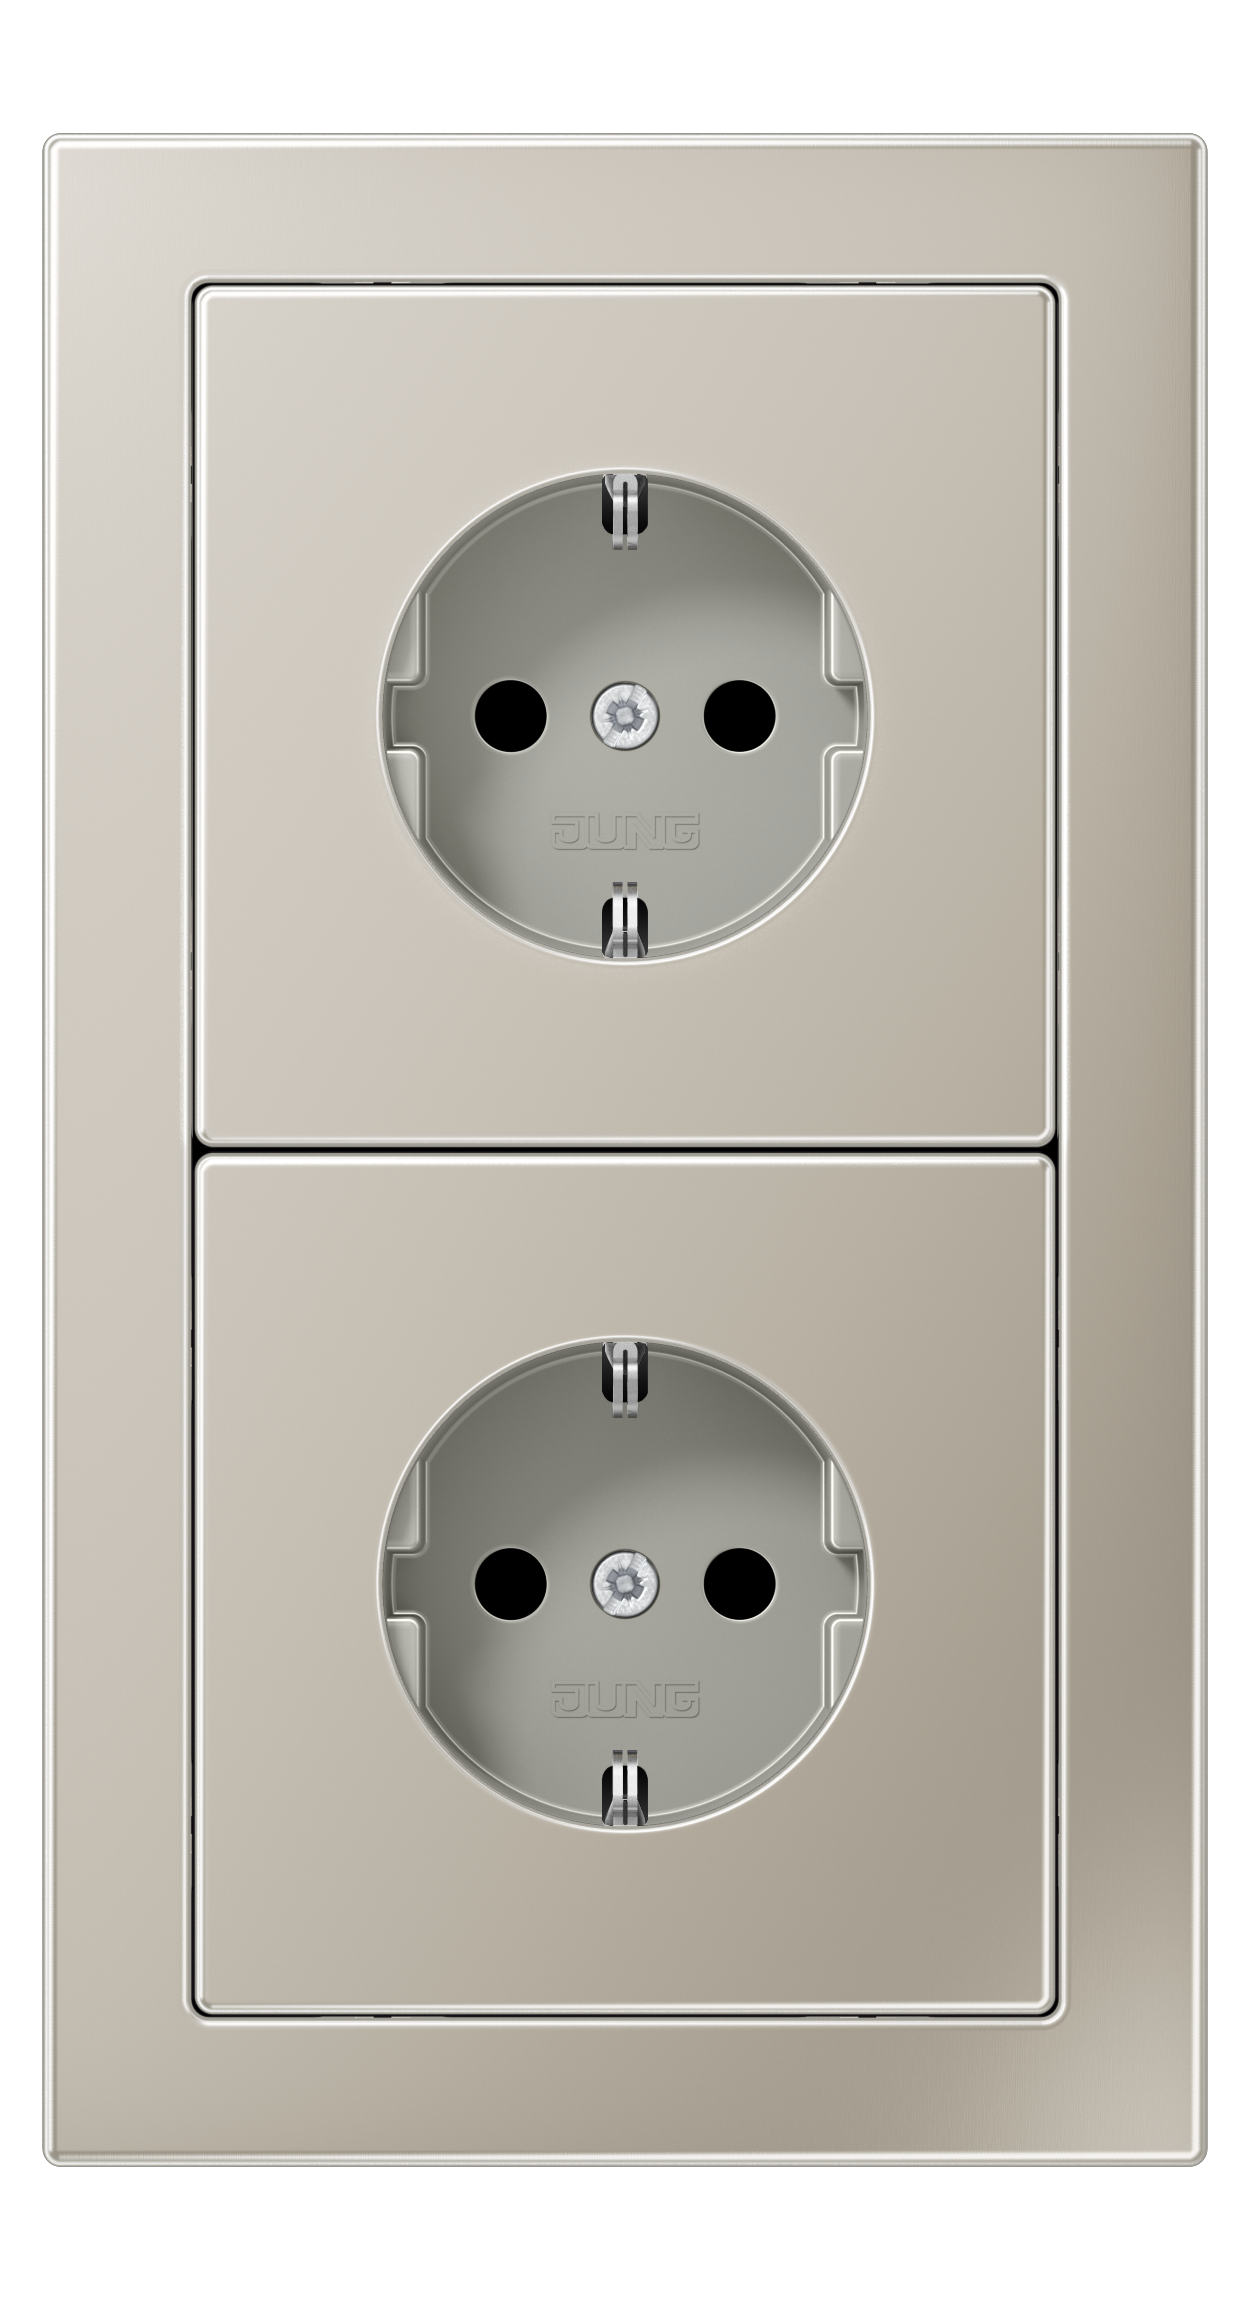 JUNG_LS_Design_stainless_steel_socket-socket